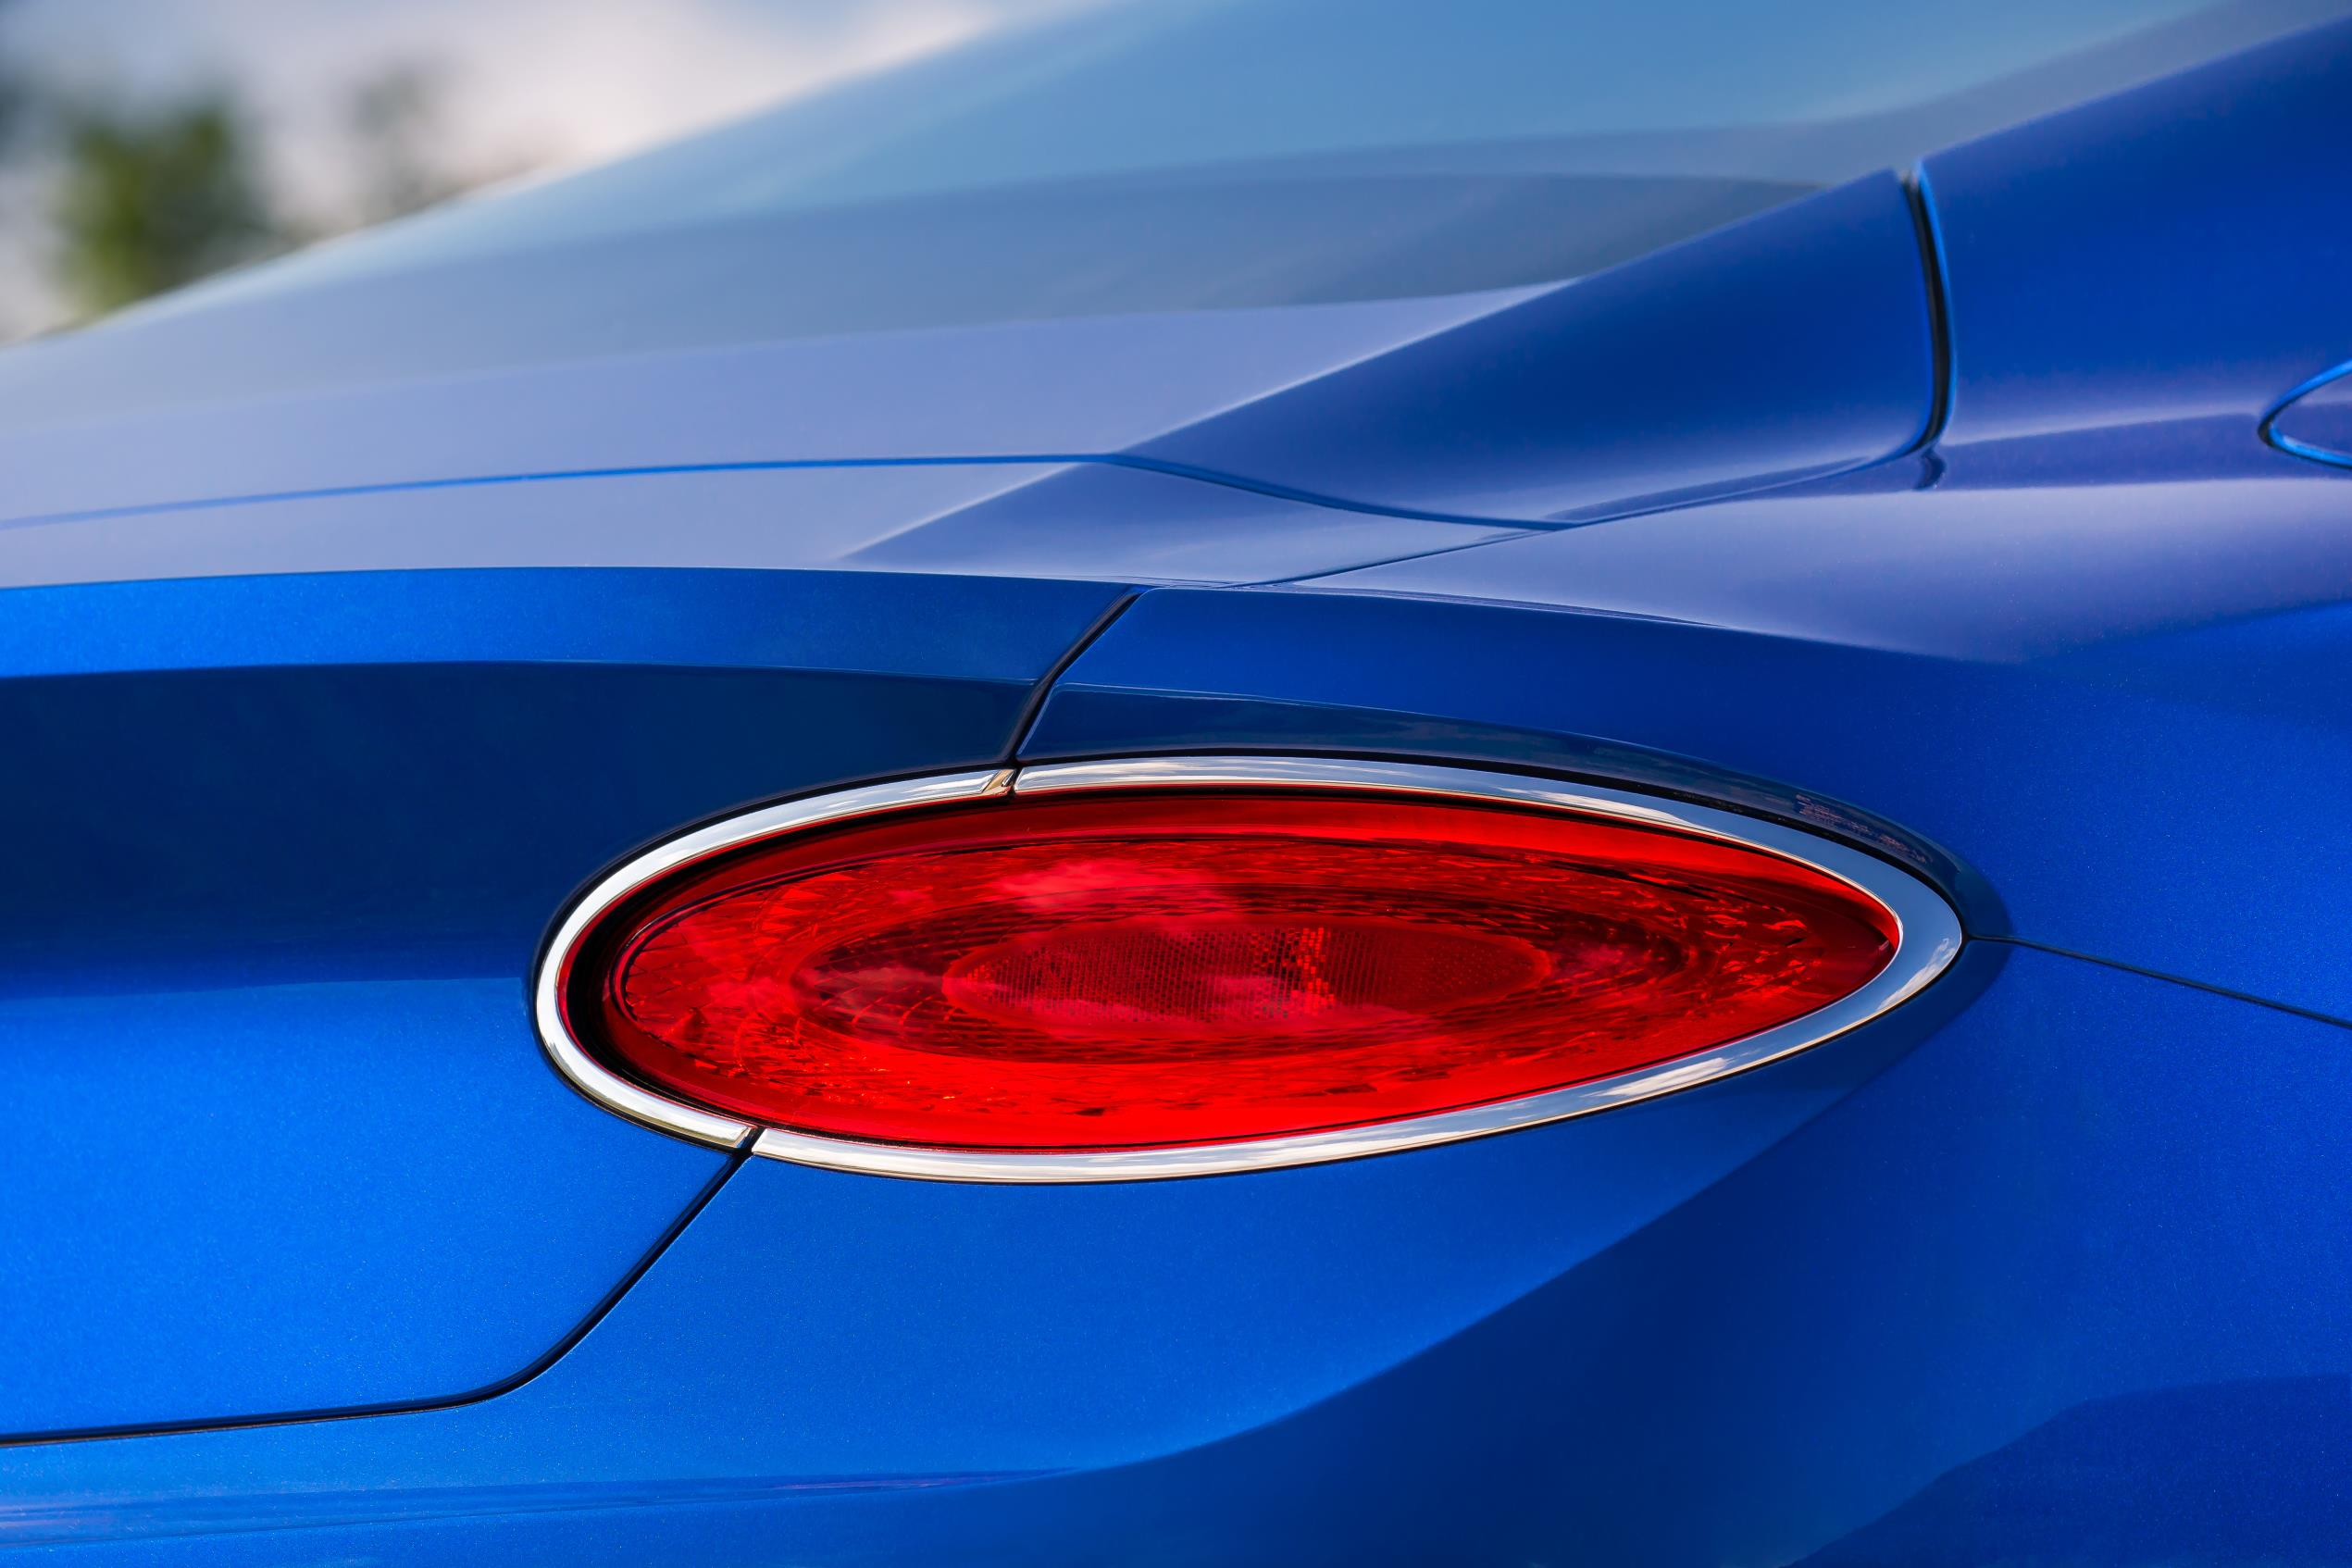 2018 Bentley Continental GT rear lights